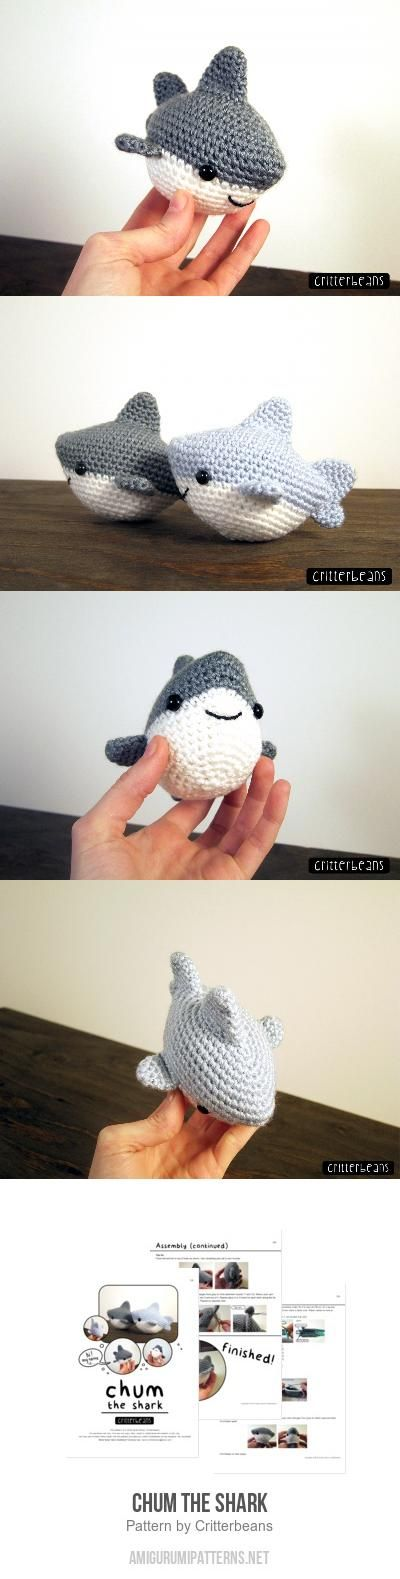 Amigurumi Shark Crochet Pattern : Best 25+ Amigurumi ideas on Pinterest